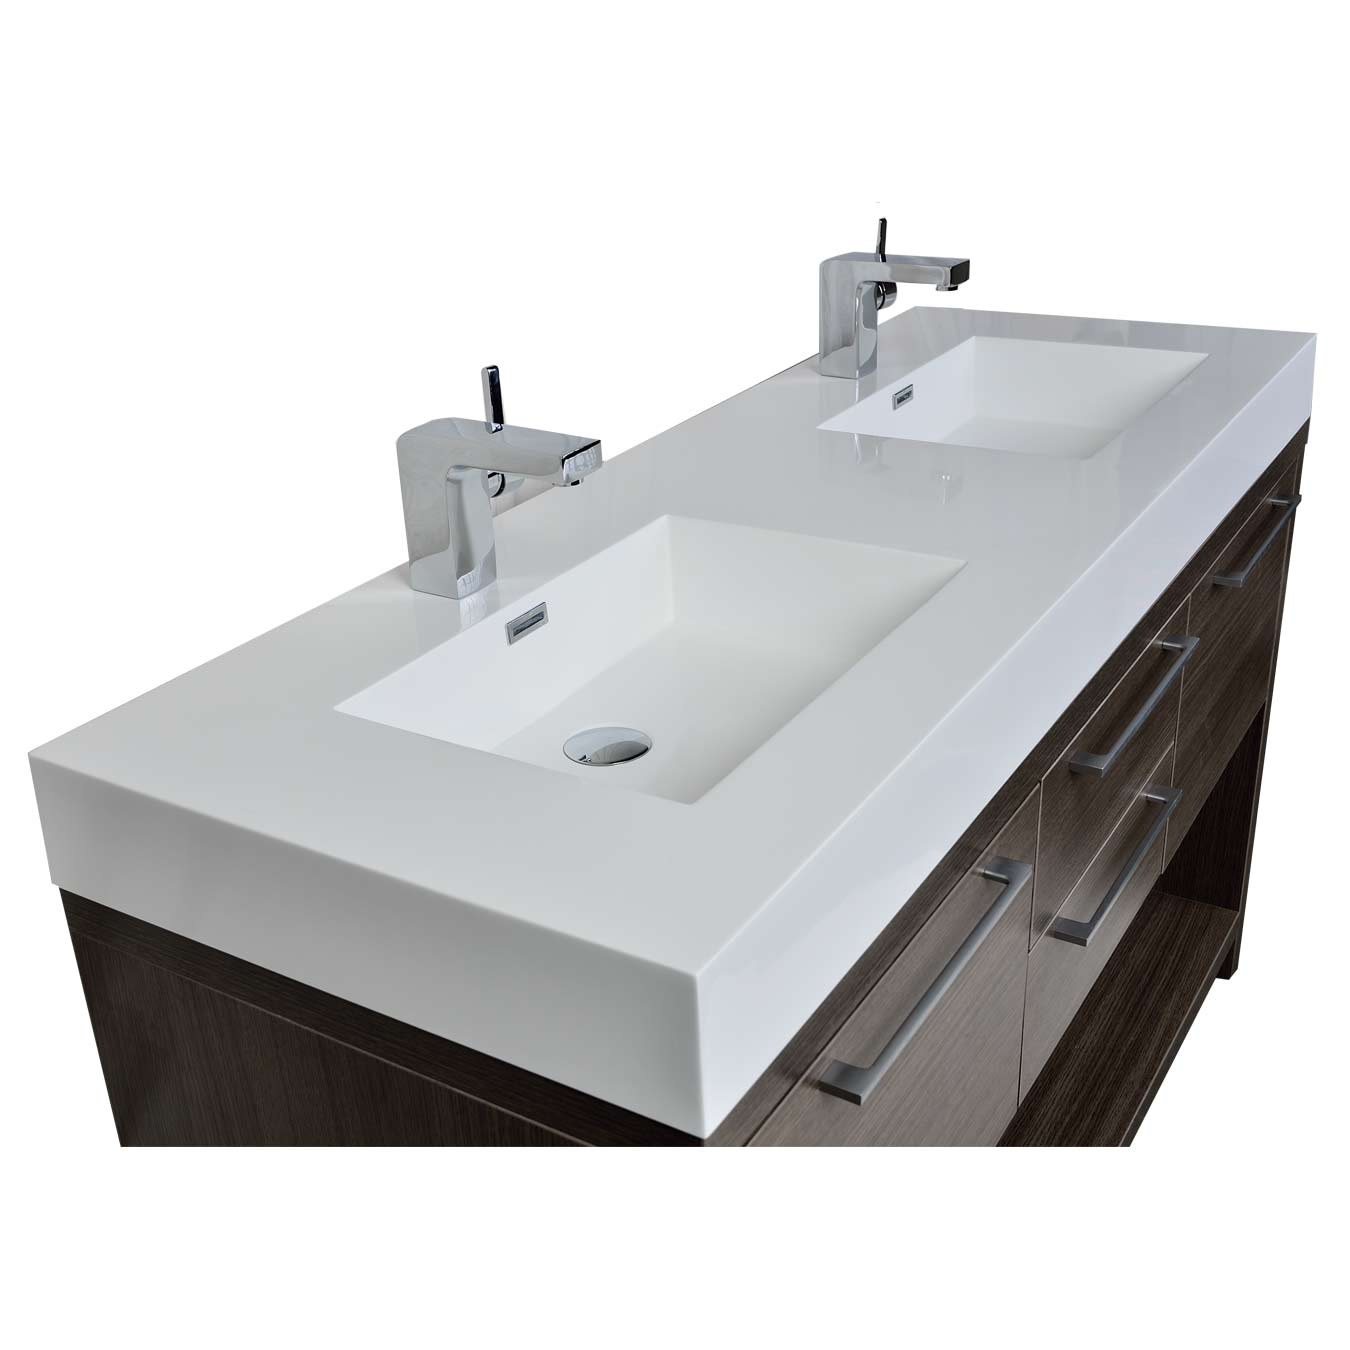 Buy lodi 57 inch contemporary double sink vanity in grey - Contemporary double sink bathroom vanity ...